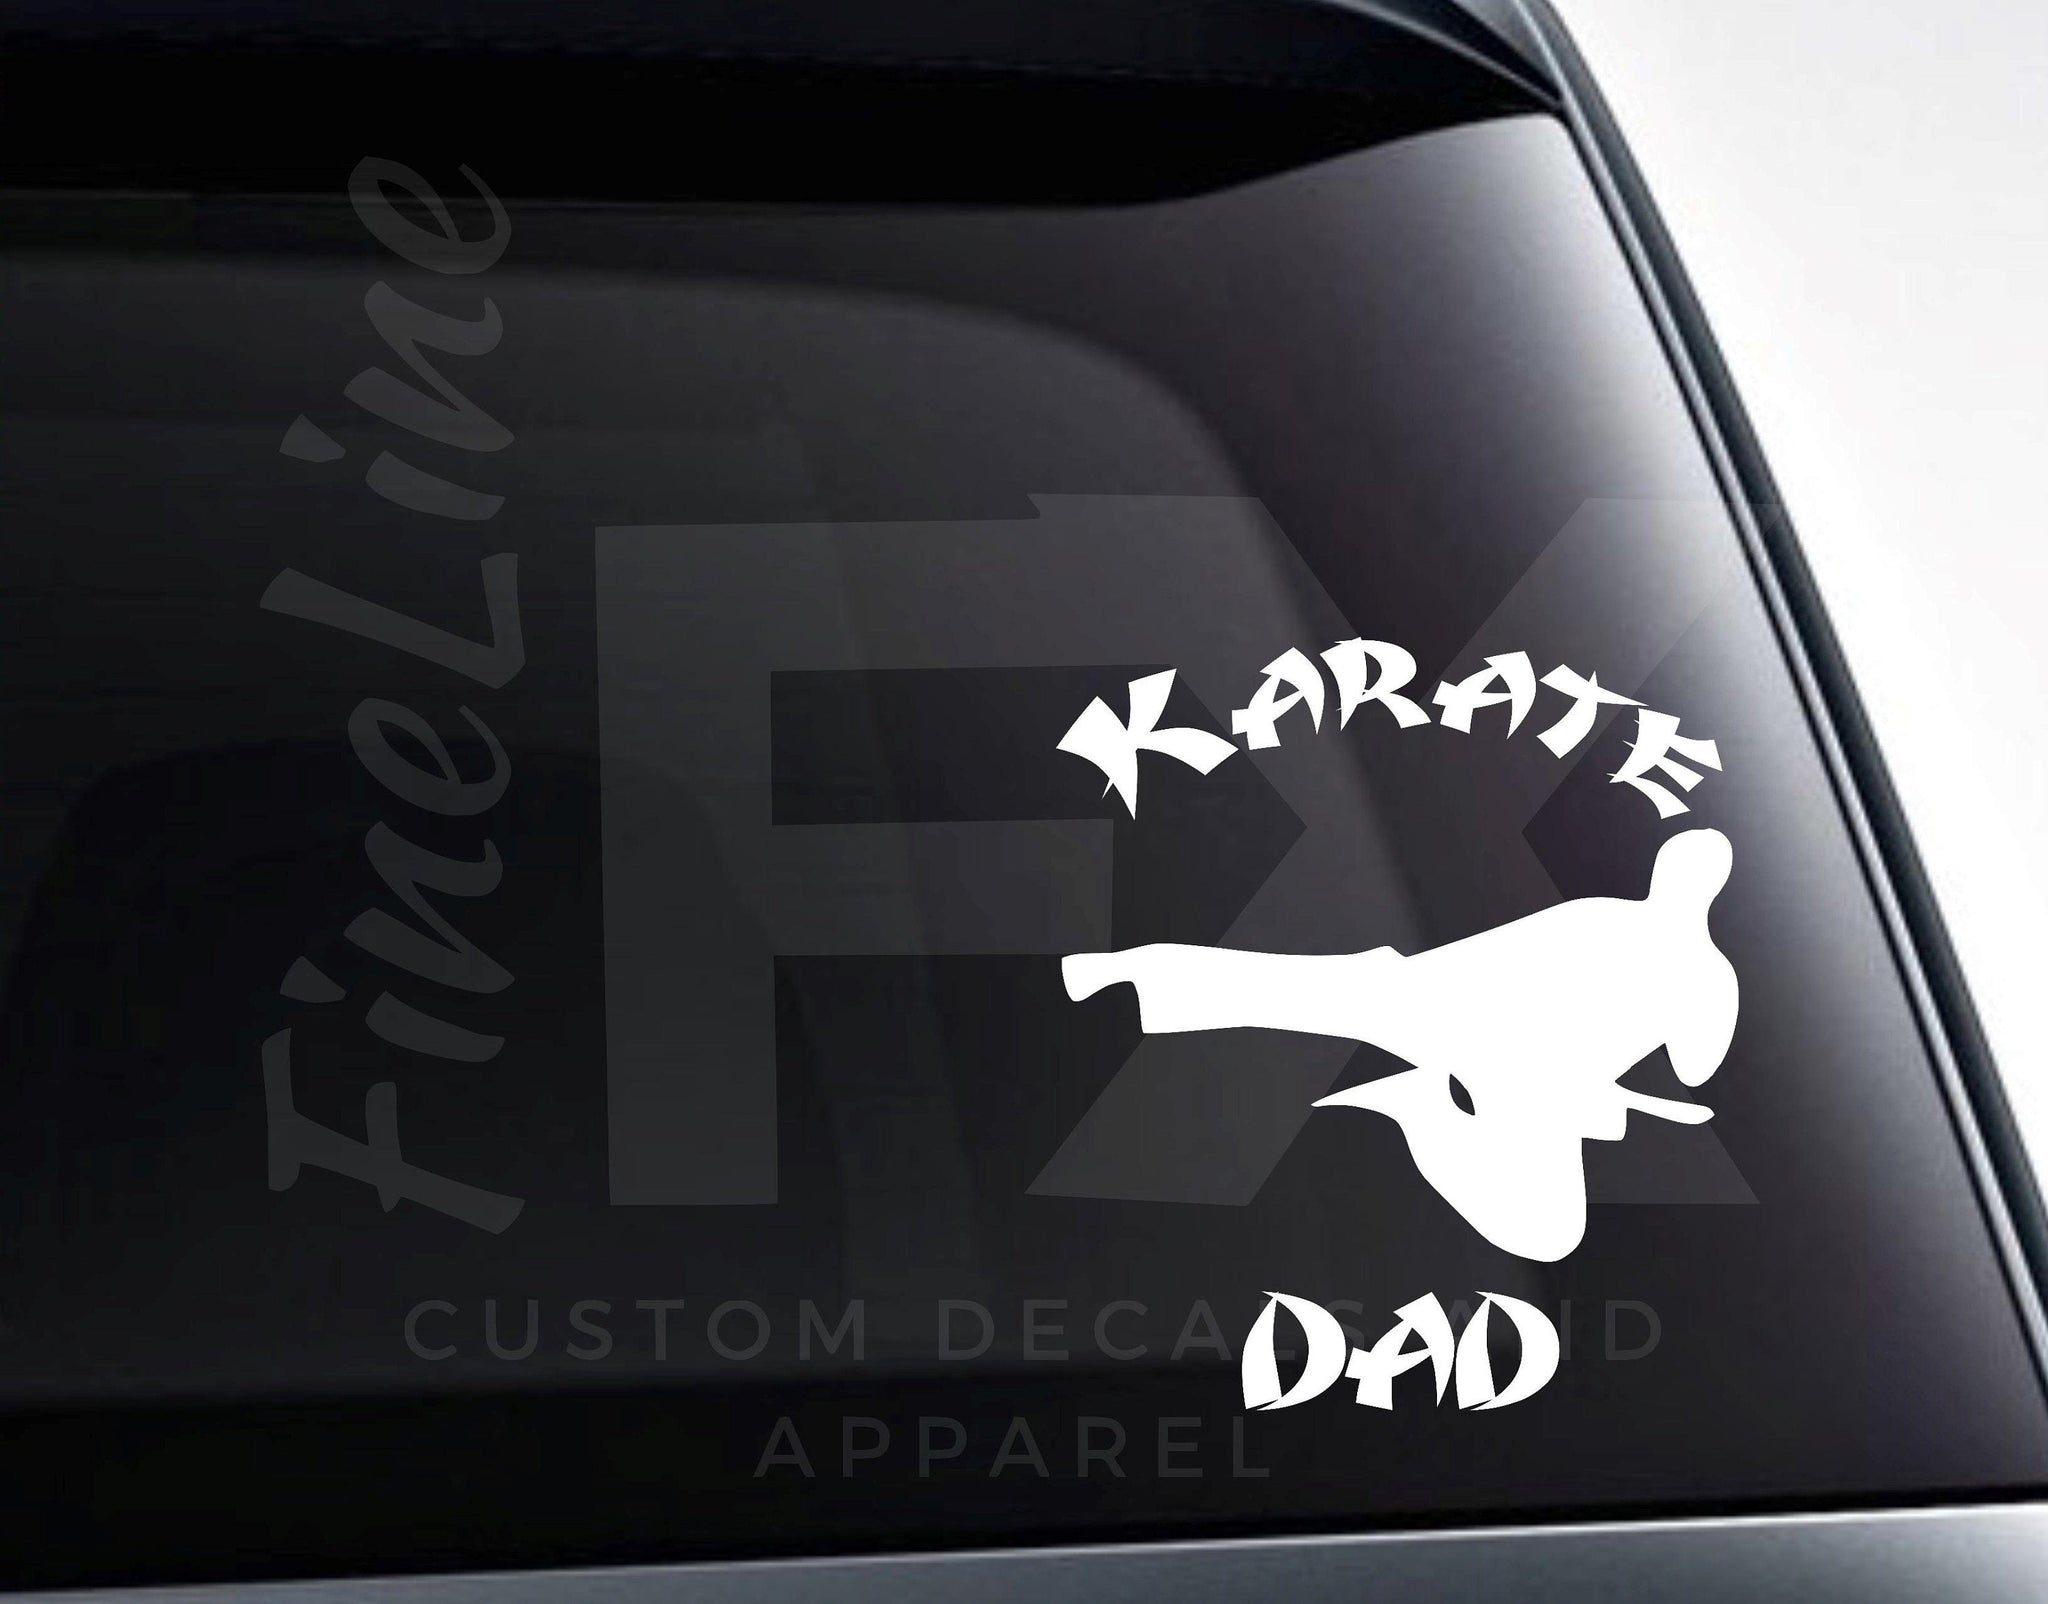 Karate Dad, Martial Arts Karate Kick Vinyl Decal Sticker